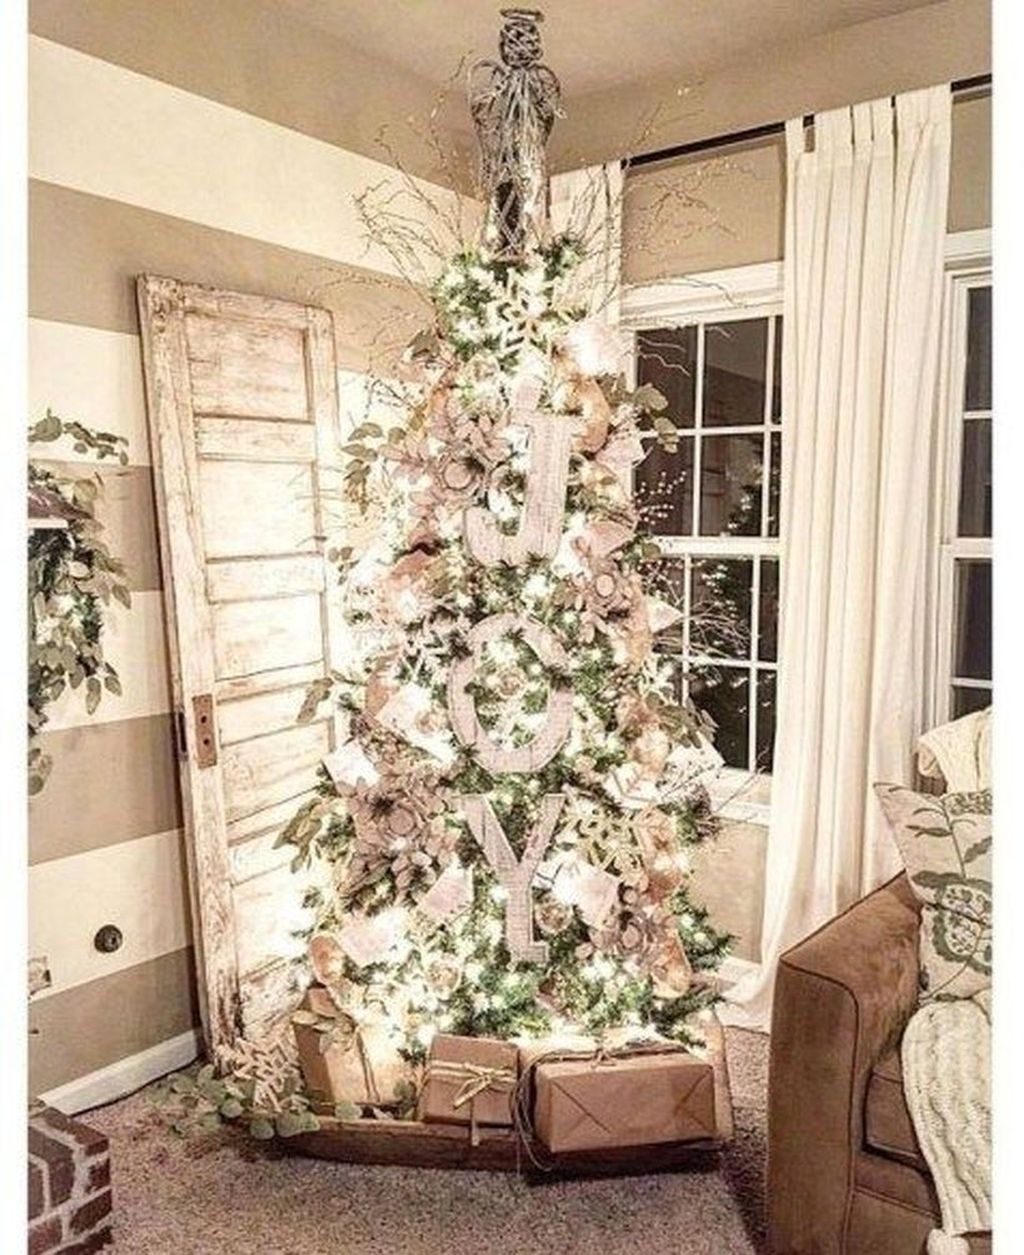 Stunning White Christmas Tree Ideas To Decorate Your Interior 27